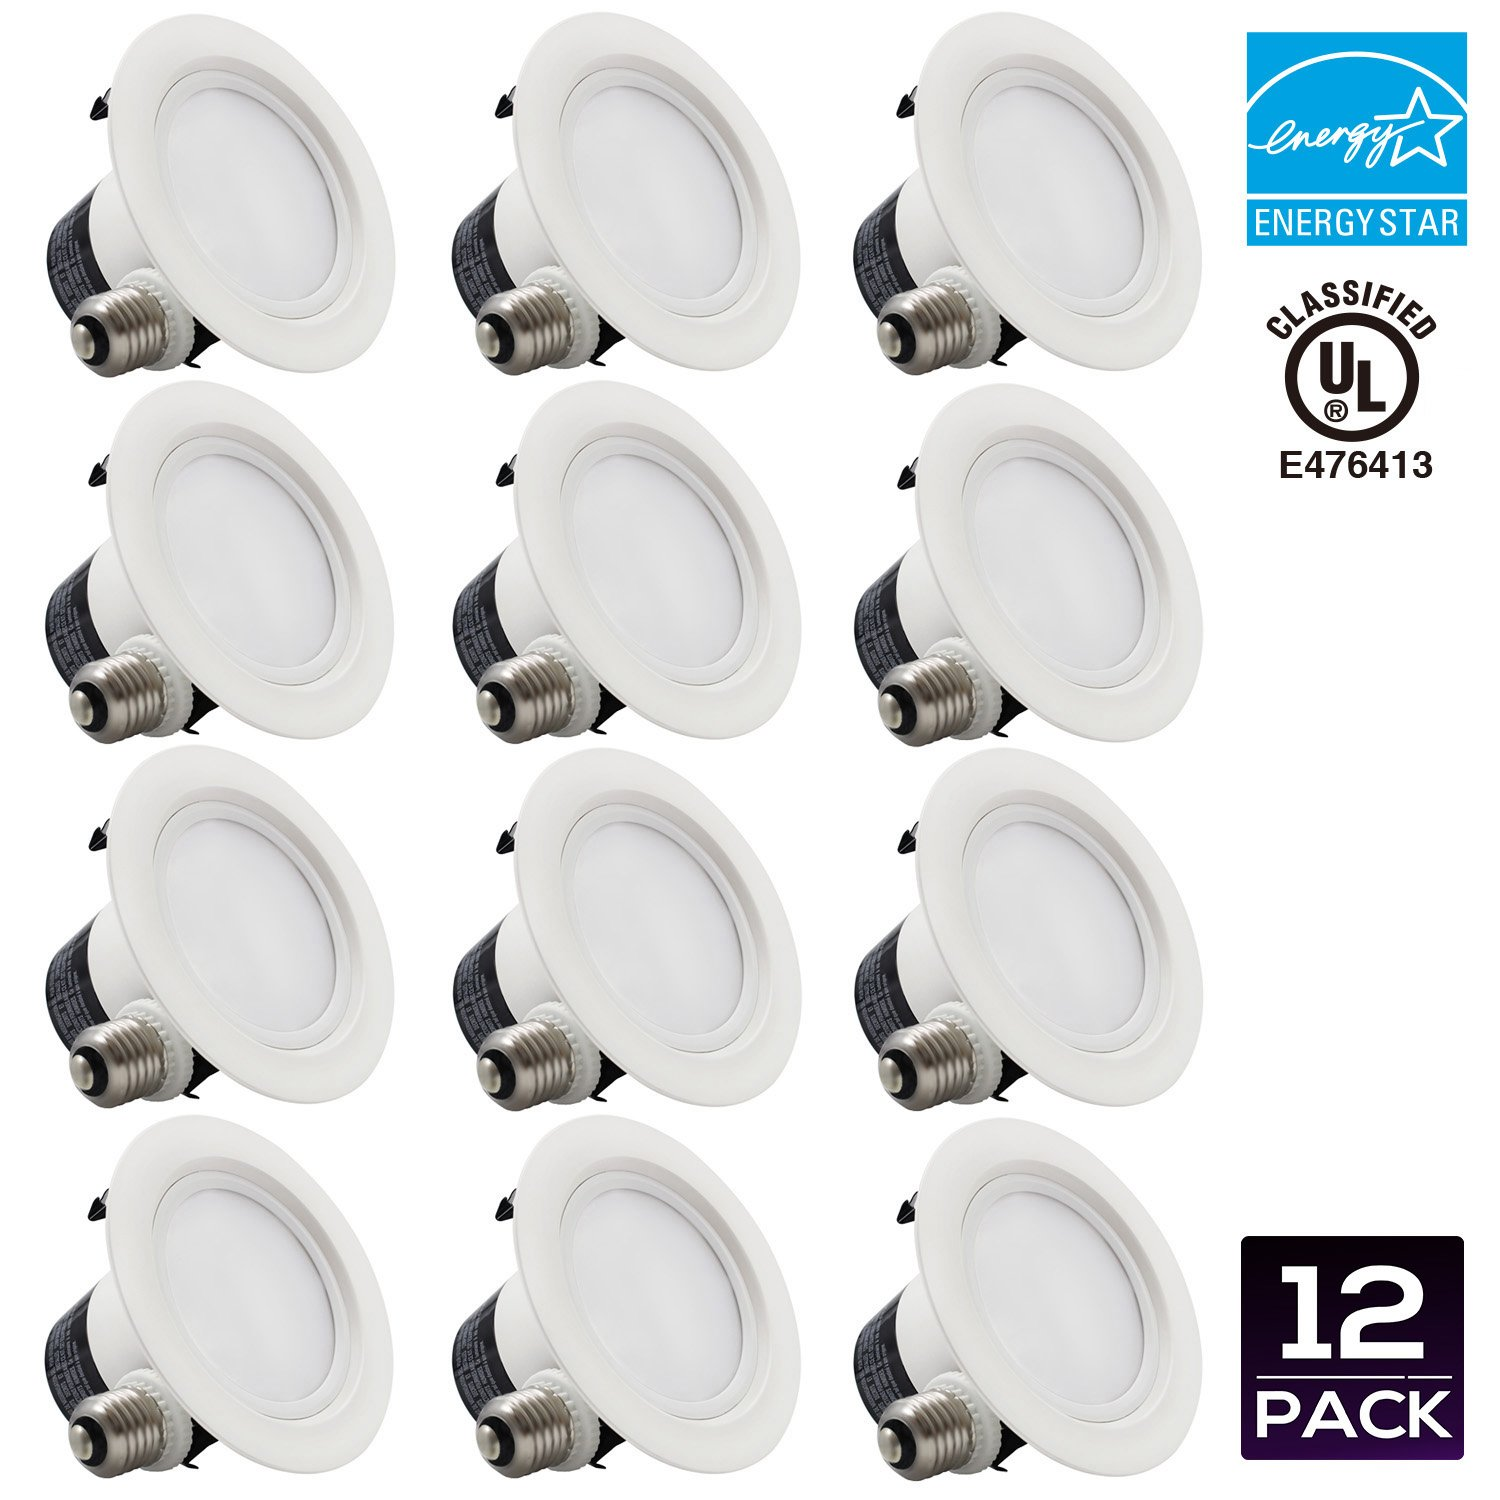 Dimmable Recessed Downlight Equivalent Daylight Image 1